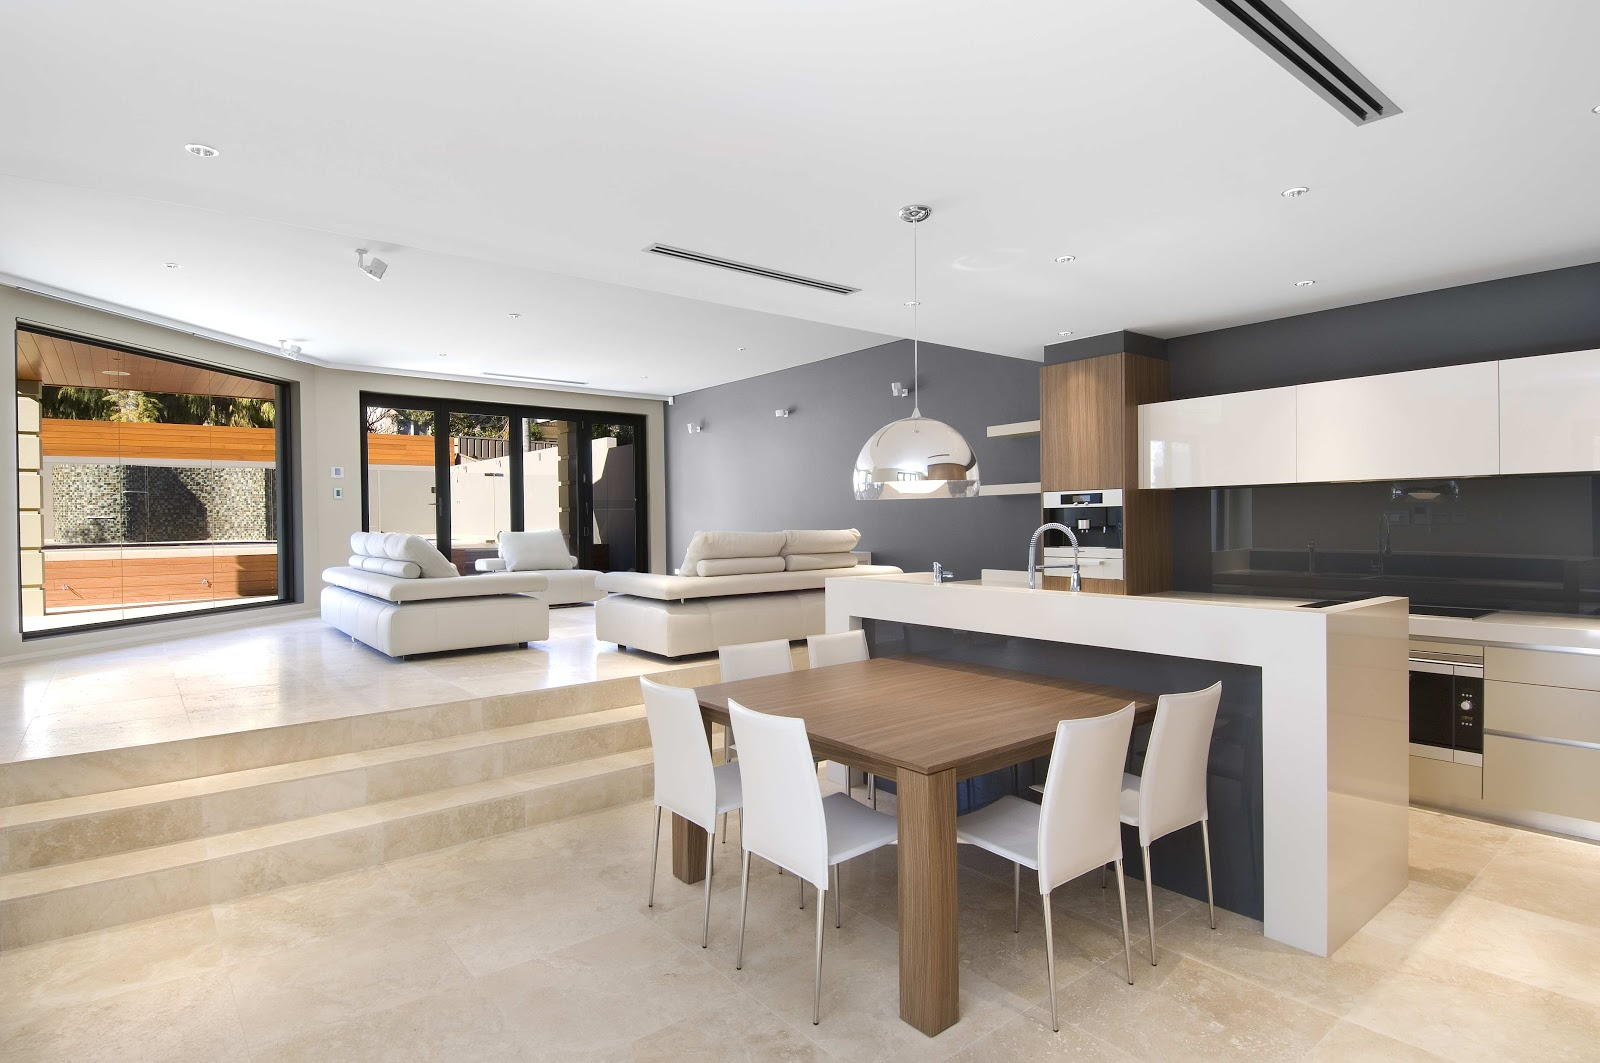 kitchen design takes centre stage kitchens by design Kitchen design takes centre stage design by Minosa